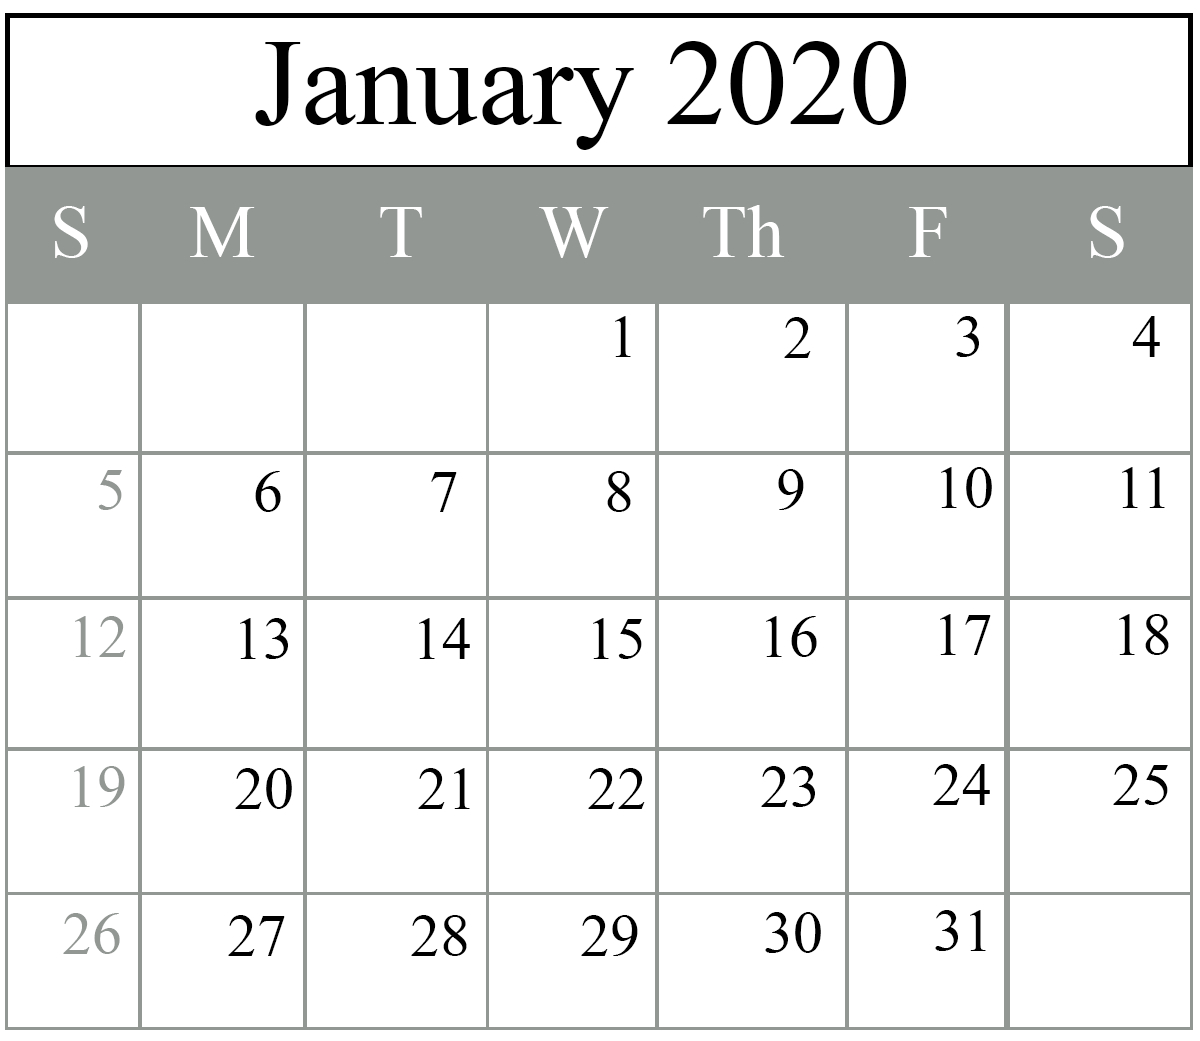 Free January 2020 Calendar Templates {Pdf, Excel, Word} | Printable with 2020 Calender With Space To Write